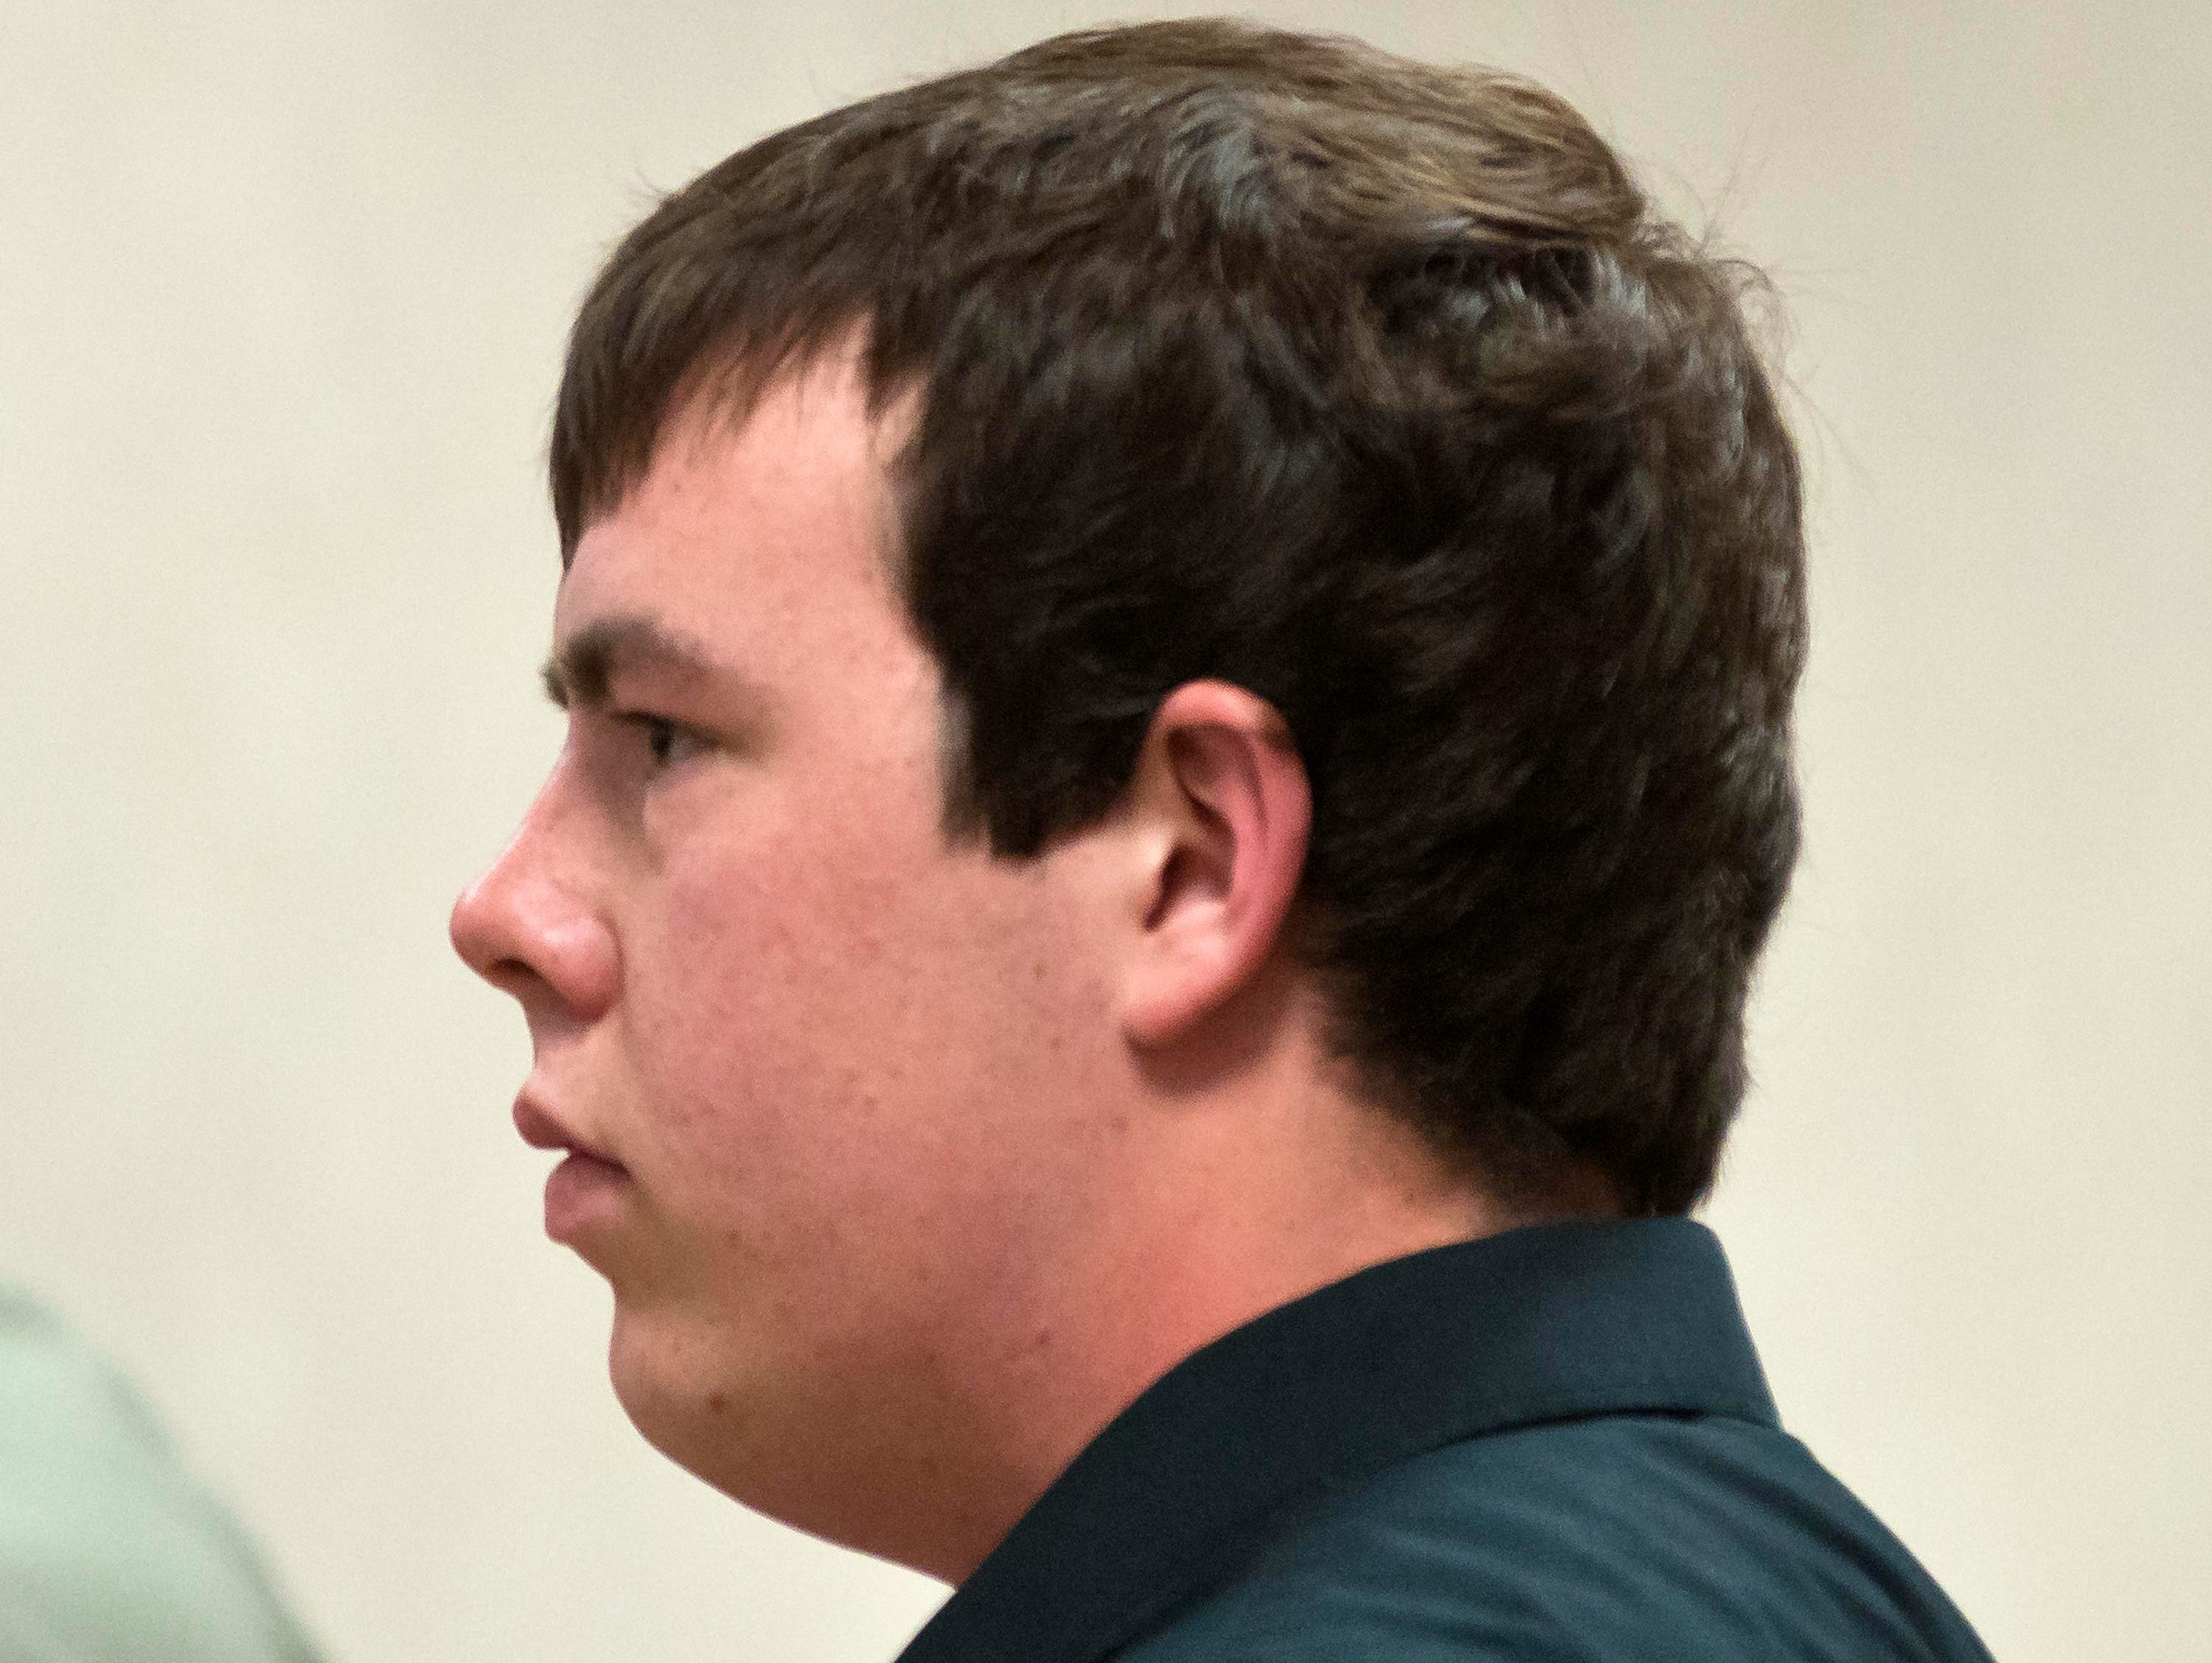 Brian Lasell, 19, of Milton, Vt., pleads not guilty Aug. 19, 2014, in Vermont Superior Court in Burlington, Vt., to a simple assault charge.